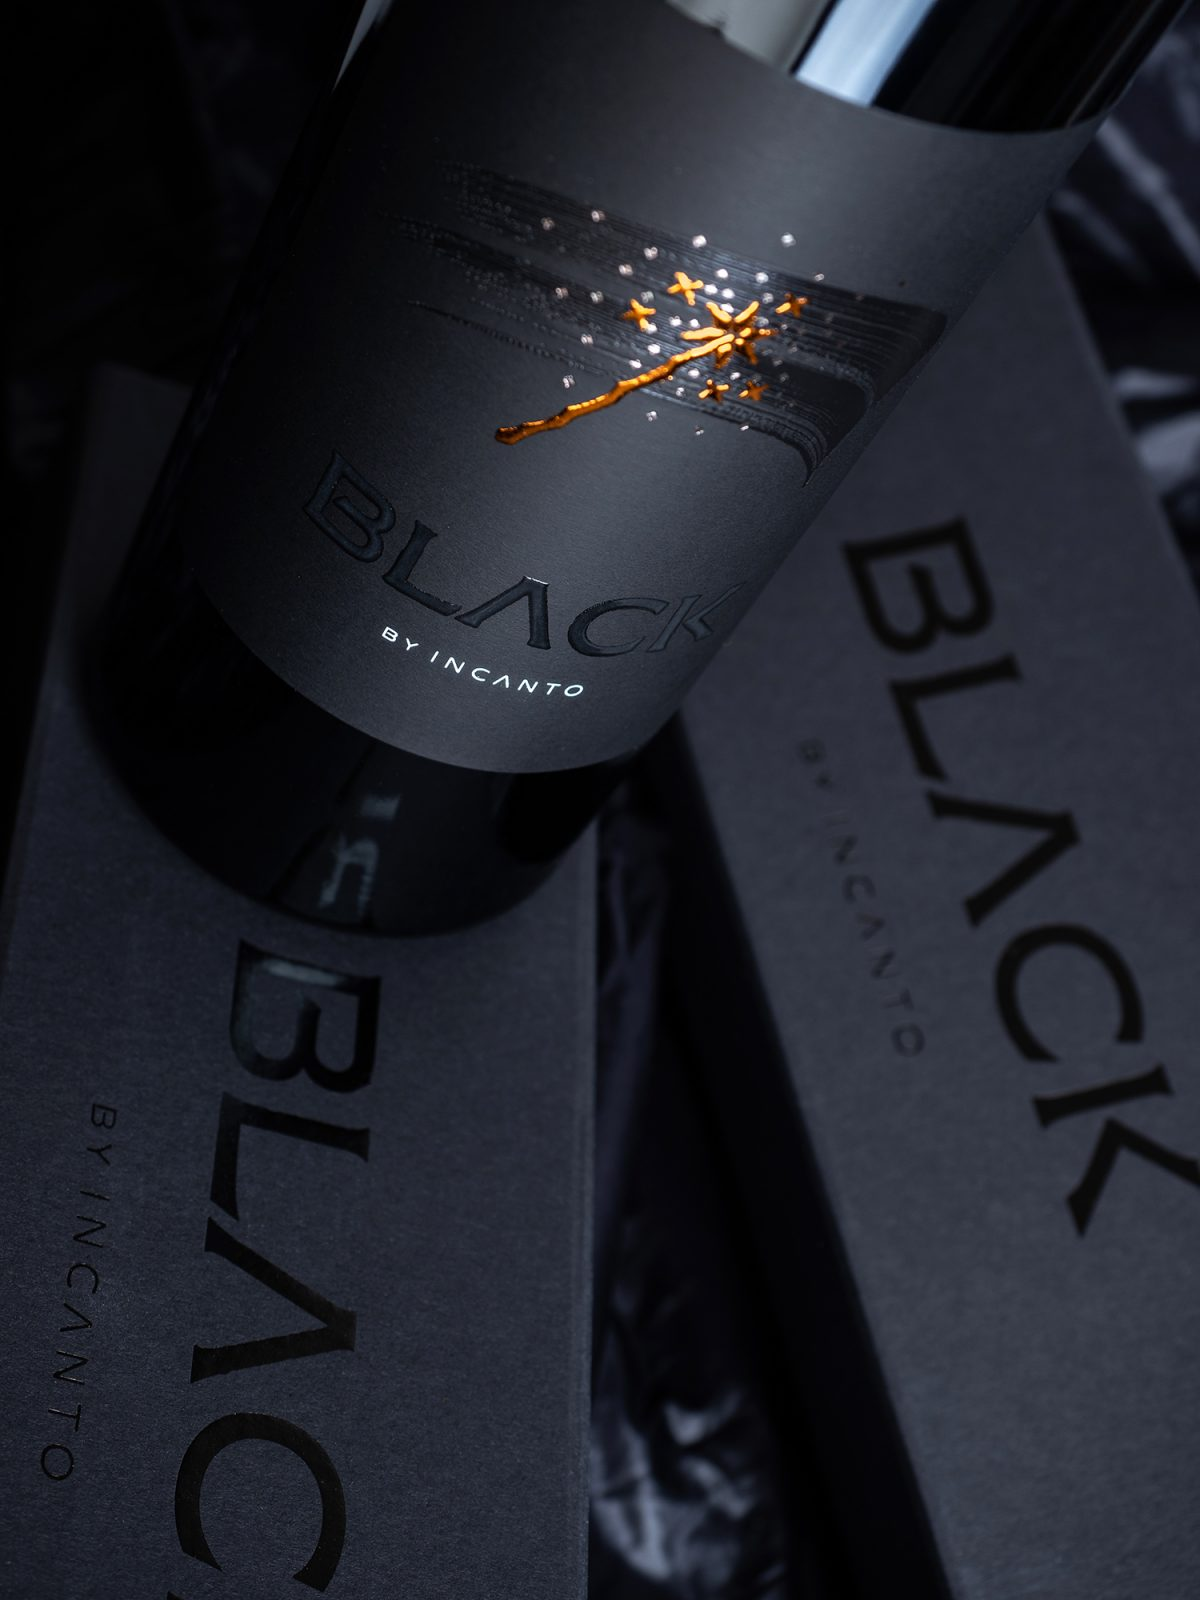 The Incanto Black Branding & Packaging Shows The Enchanting Power of Wine